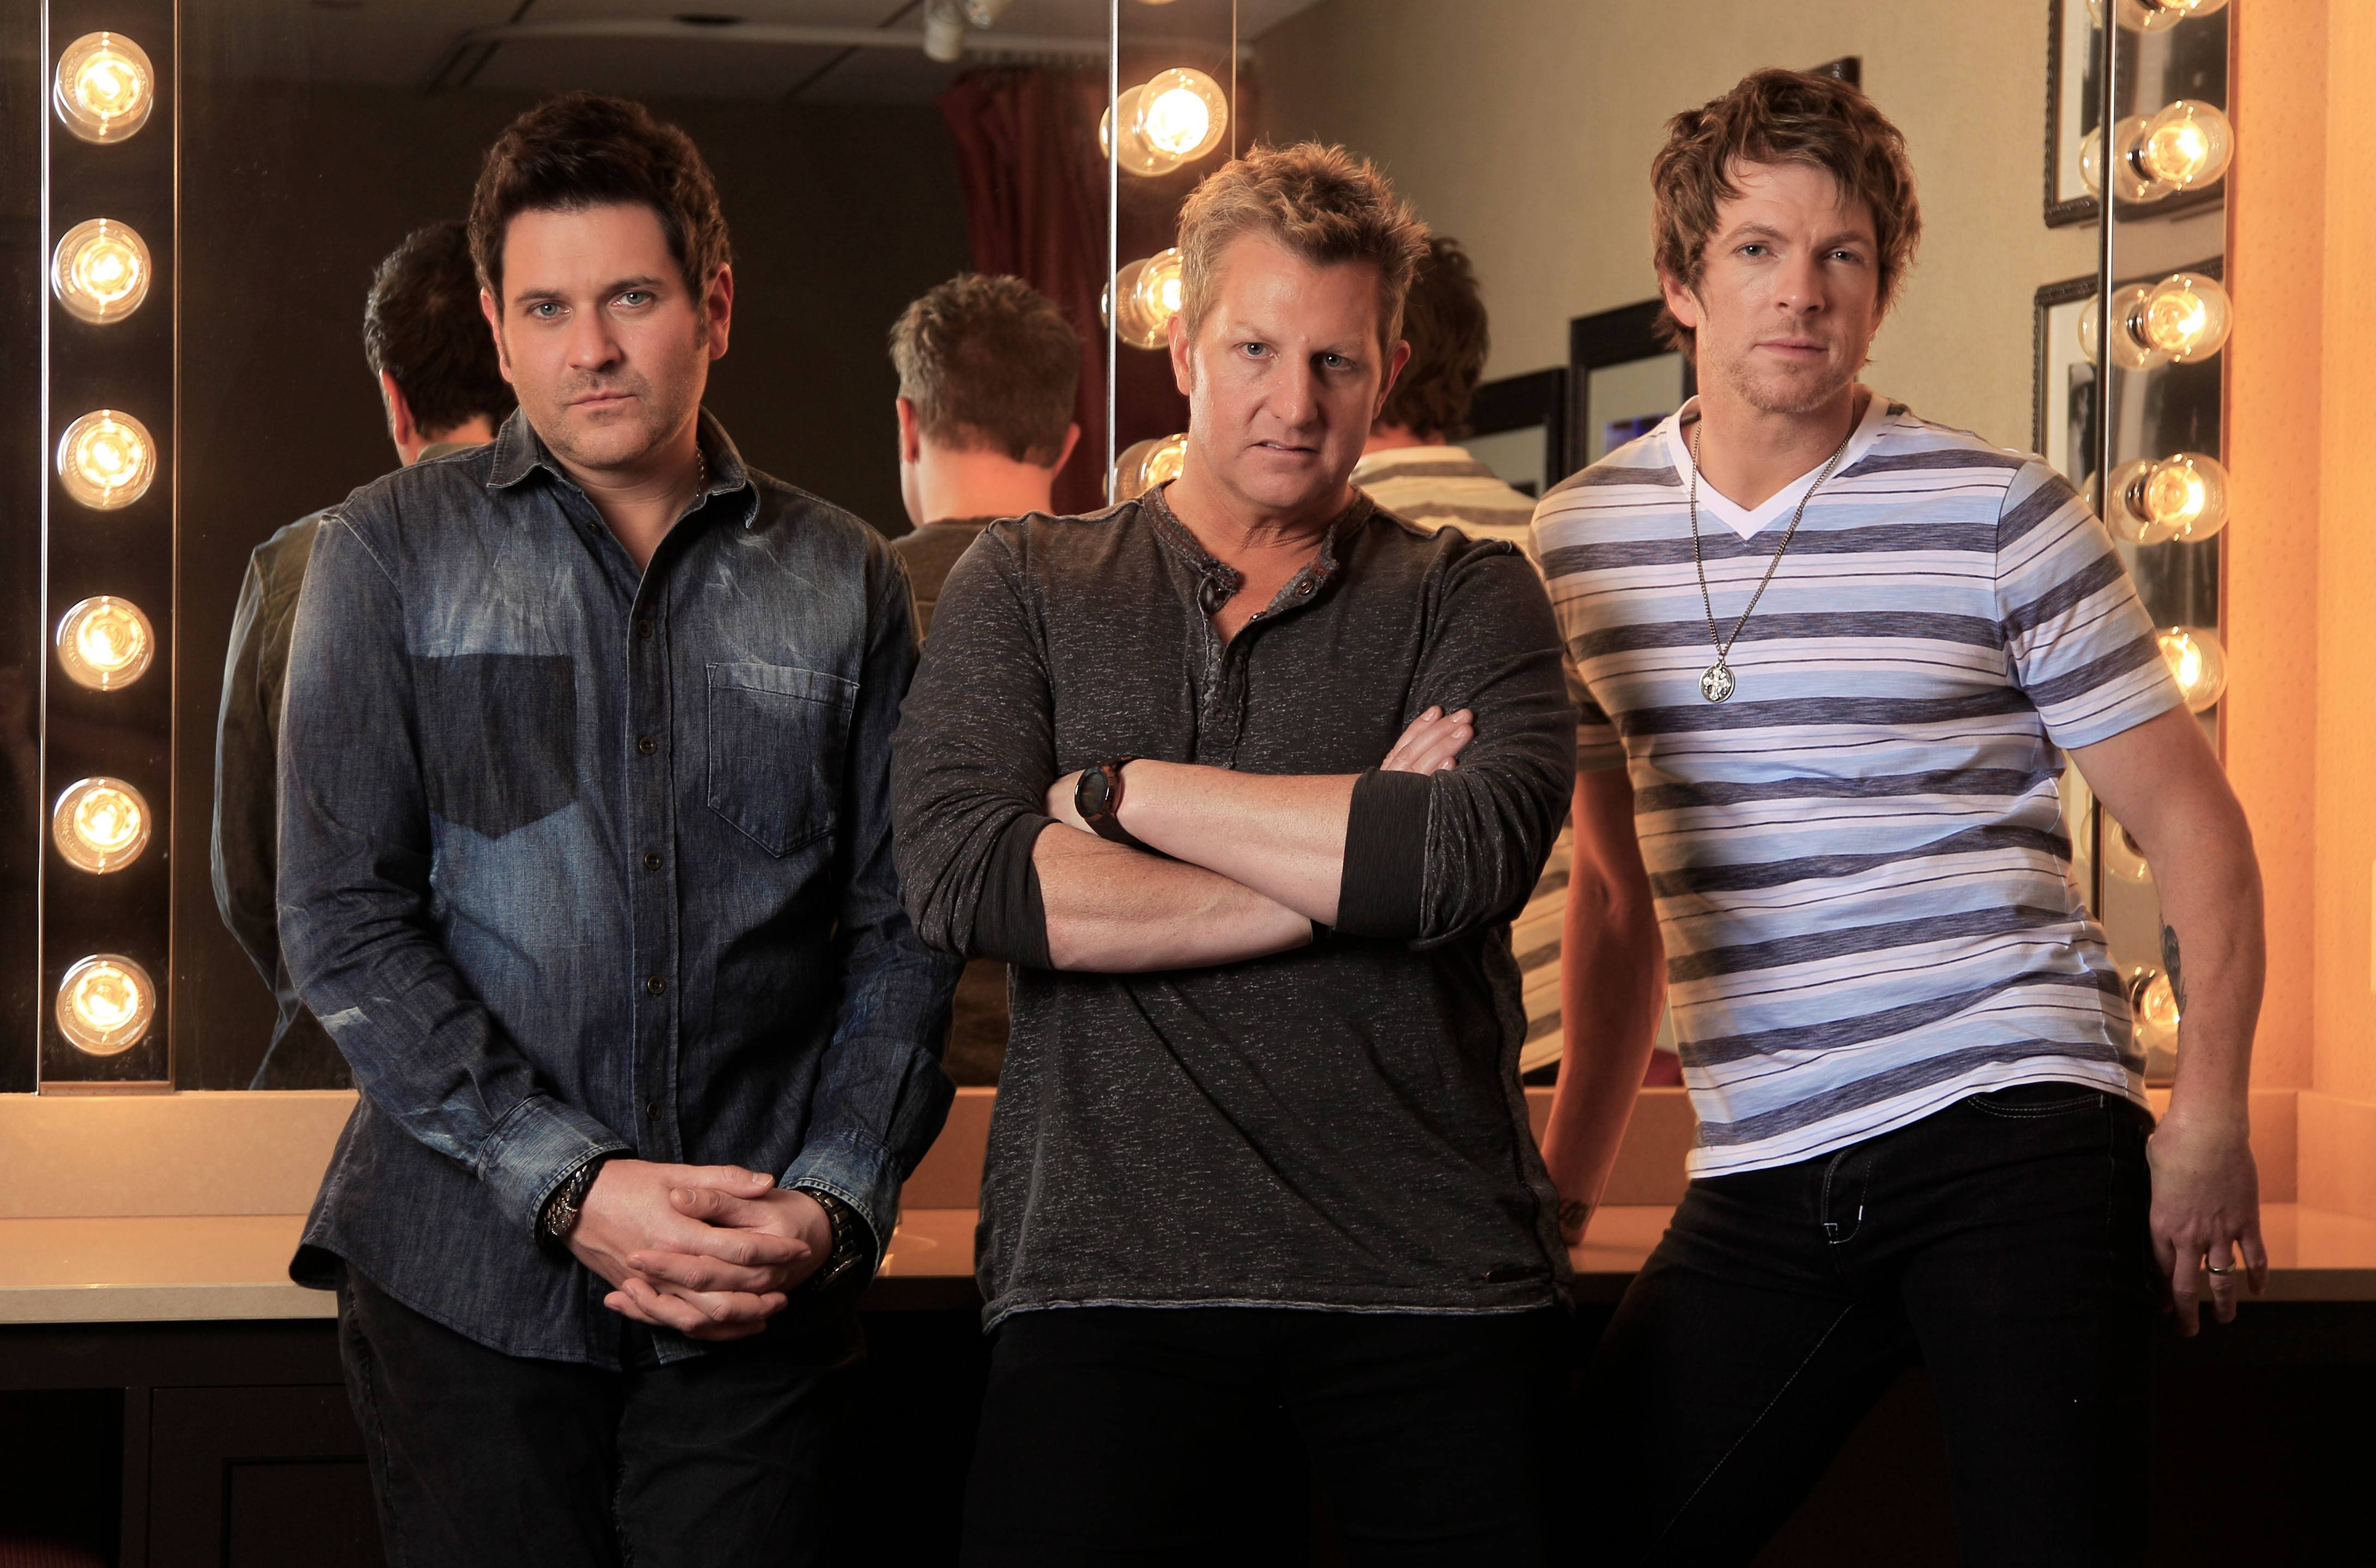 Rascal Flatts brings its Rewind Tour 2014 to the First Midwest Bank Amphitheatre in Tinley Park at 7:30 p.m. Saturday, June 14.